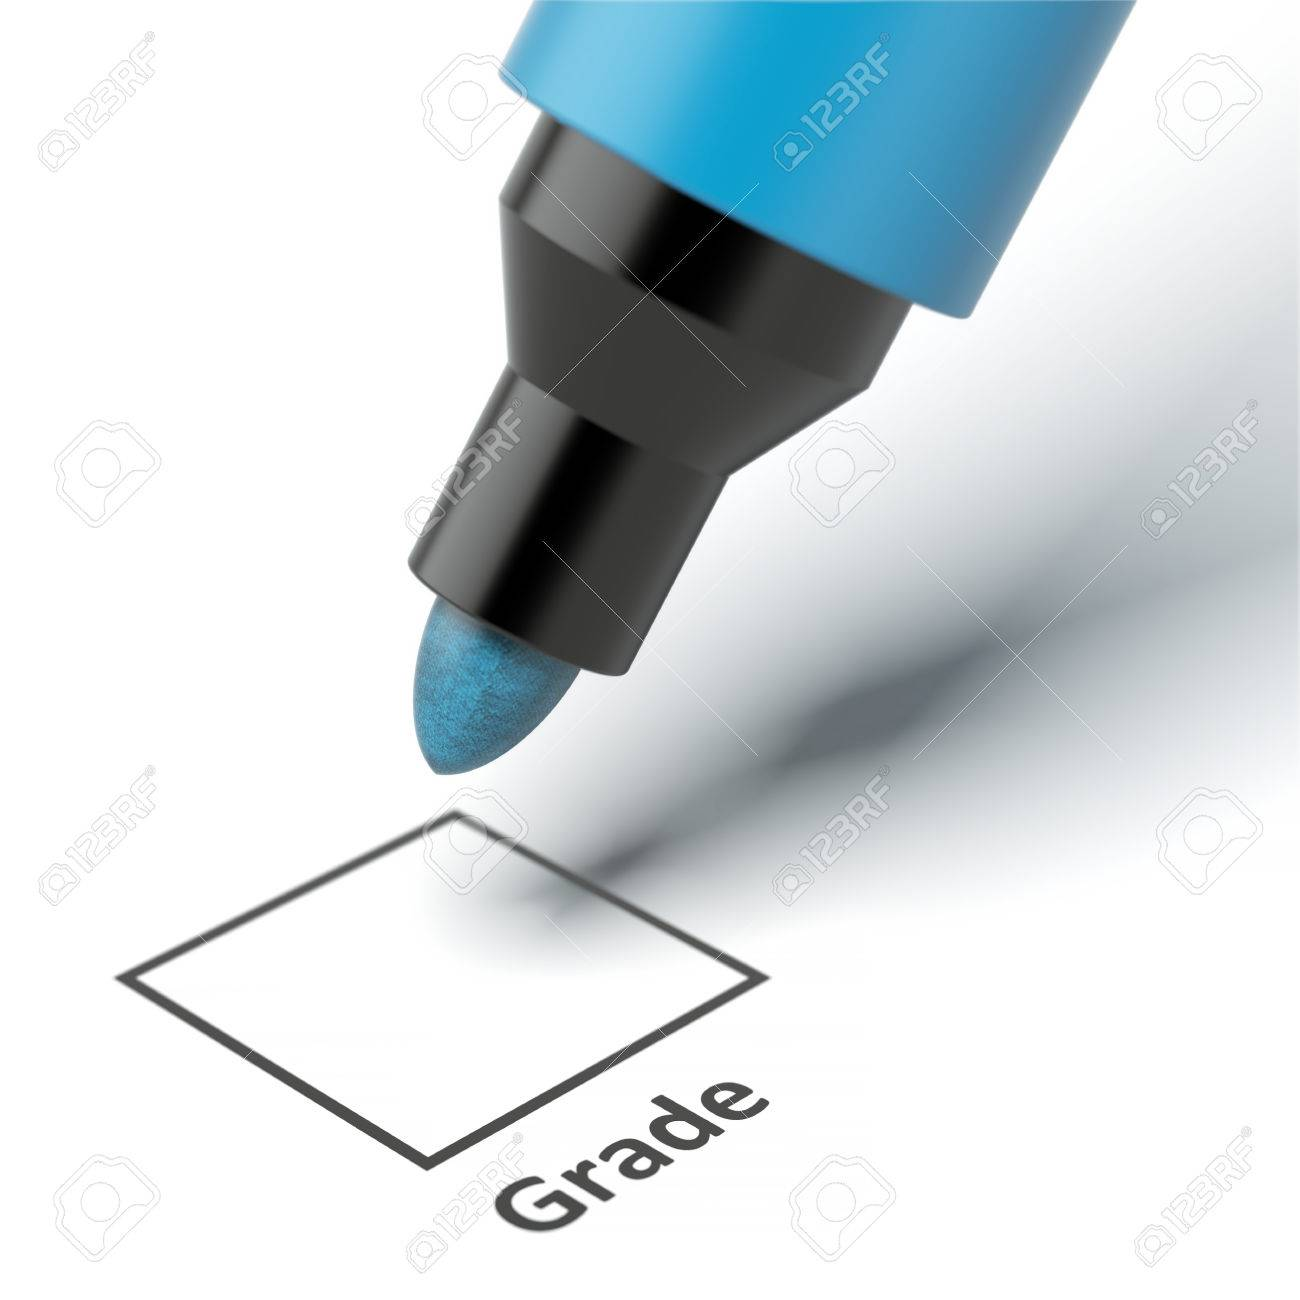 good grade images stock pictures royalty good grade photos good grade grade box on an exam paper isolated on a white background 3d